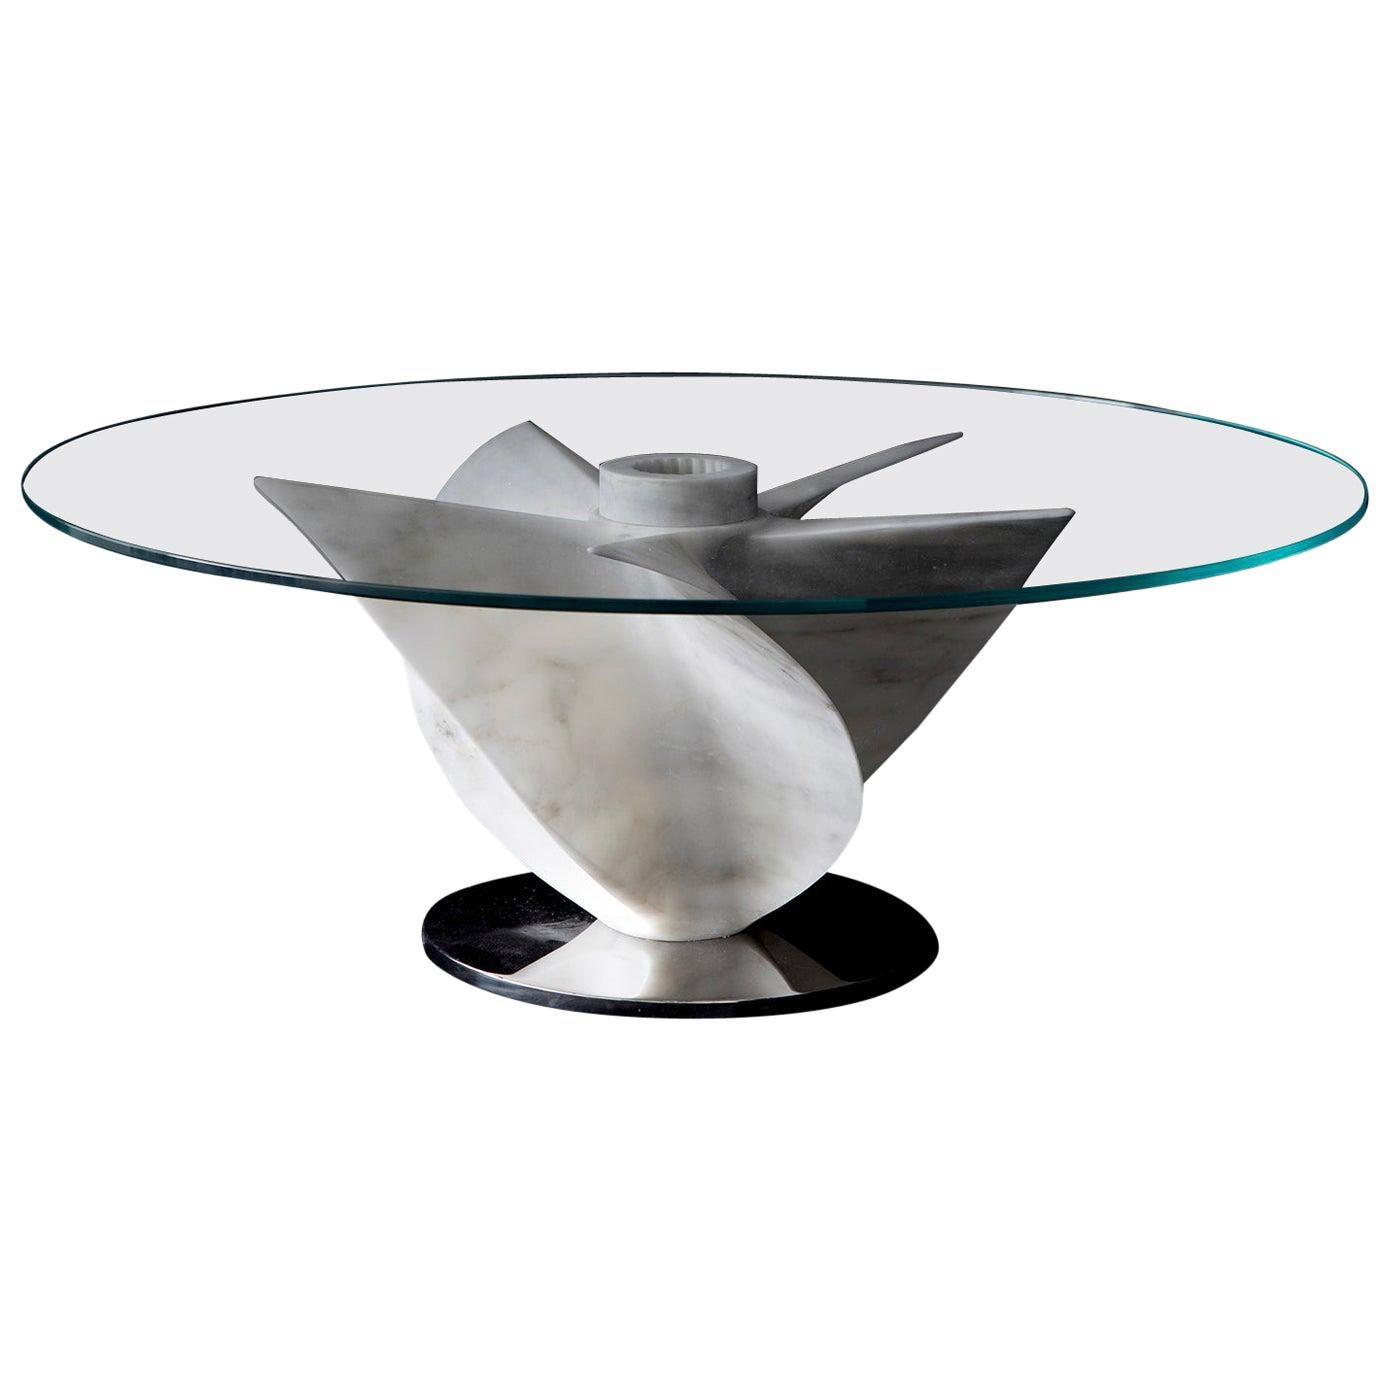 Marble Dining Table in White Carrara Marble with Glass Top